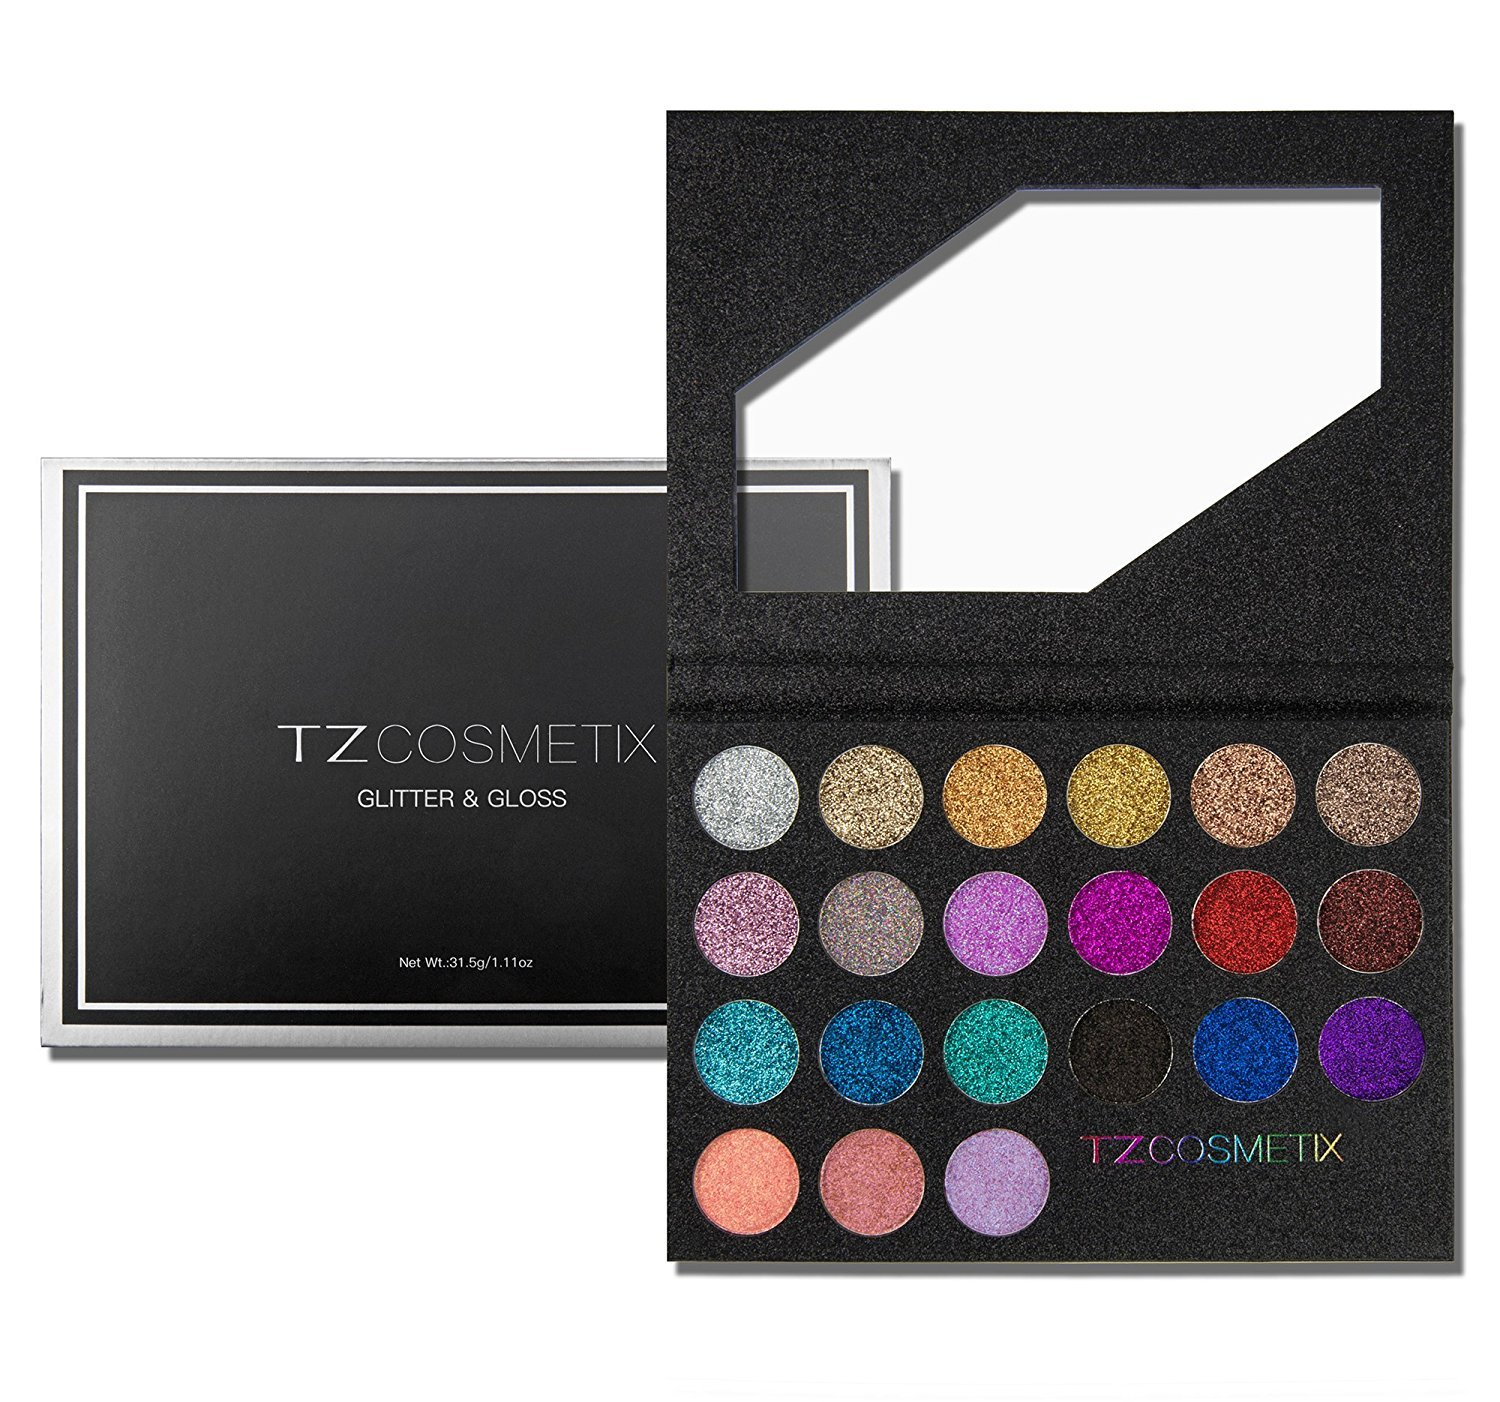 TZ COSMETIX - Pro 21 Shades Glitter & Gloss Makeup Palette - include: 18 Glitter Eyeshadow and 3 Lipgloss - Pressed Glitter Eyeshadow Palette wz-21 TZ Cosmetics